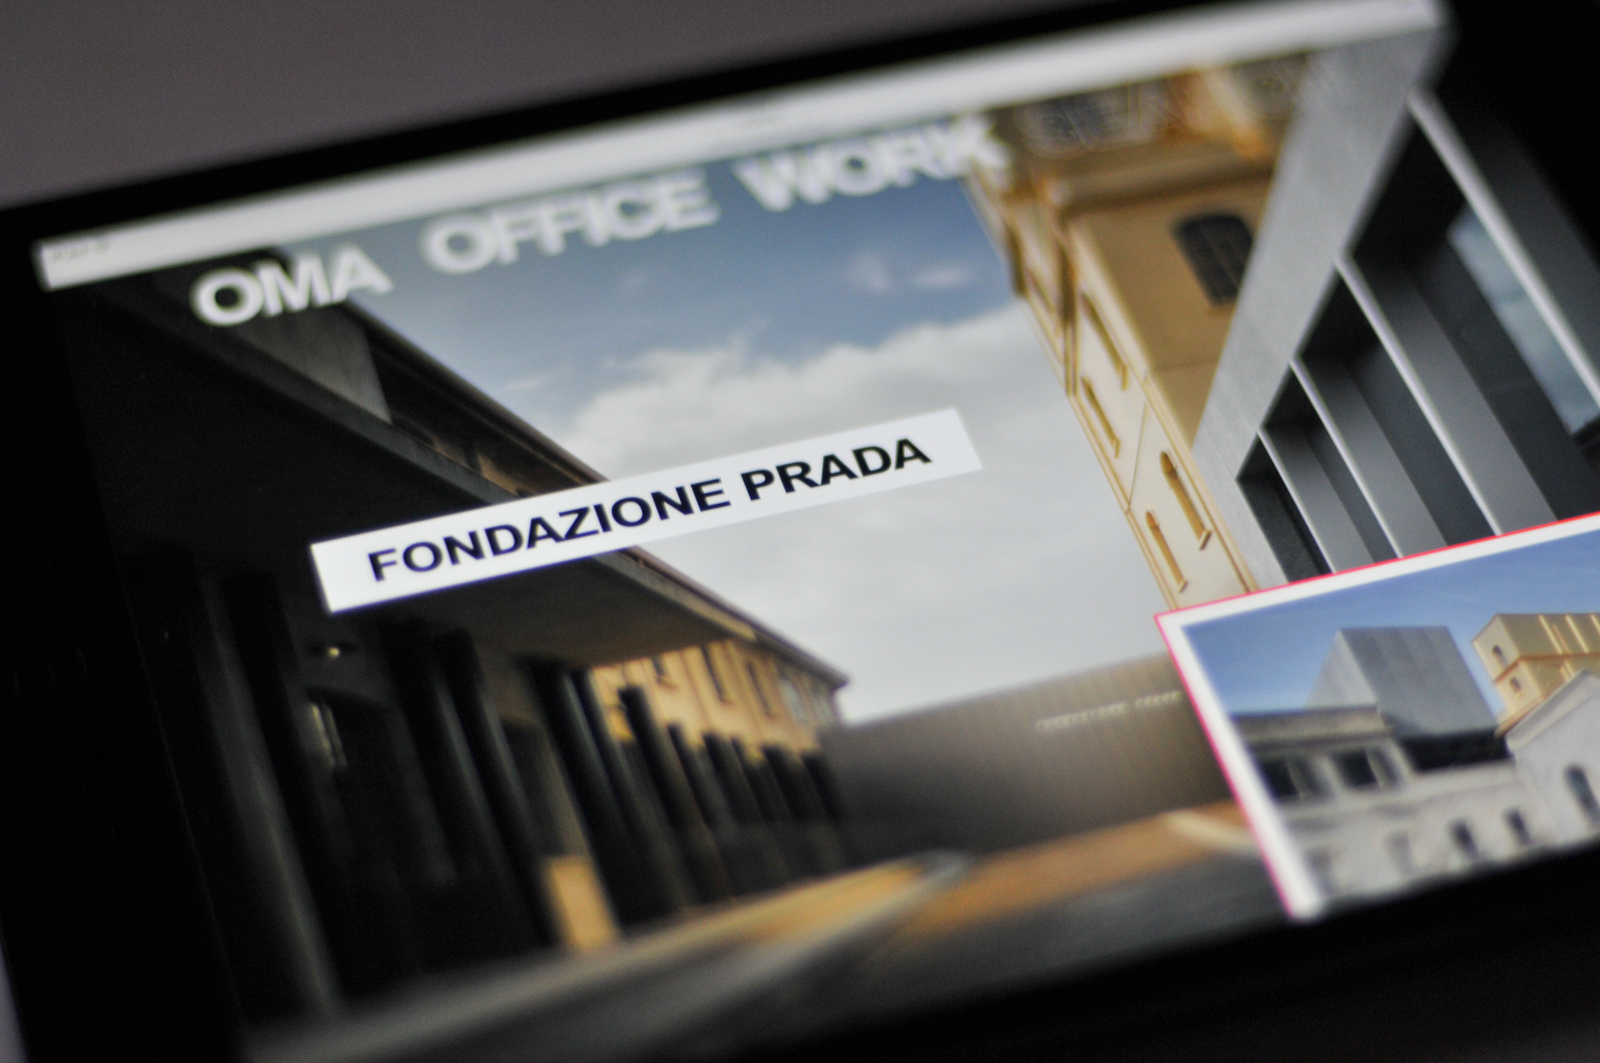 Fondazione Prada on the front page